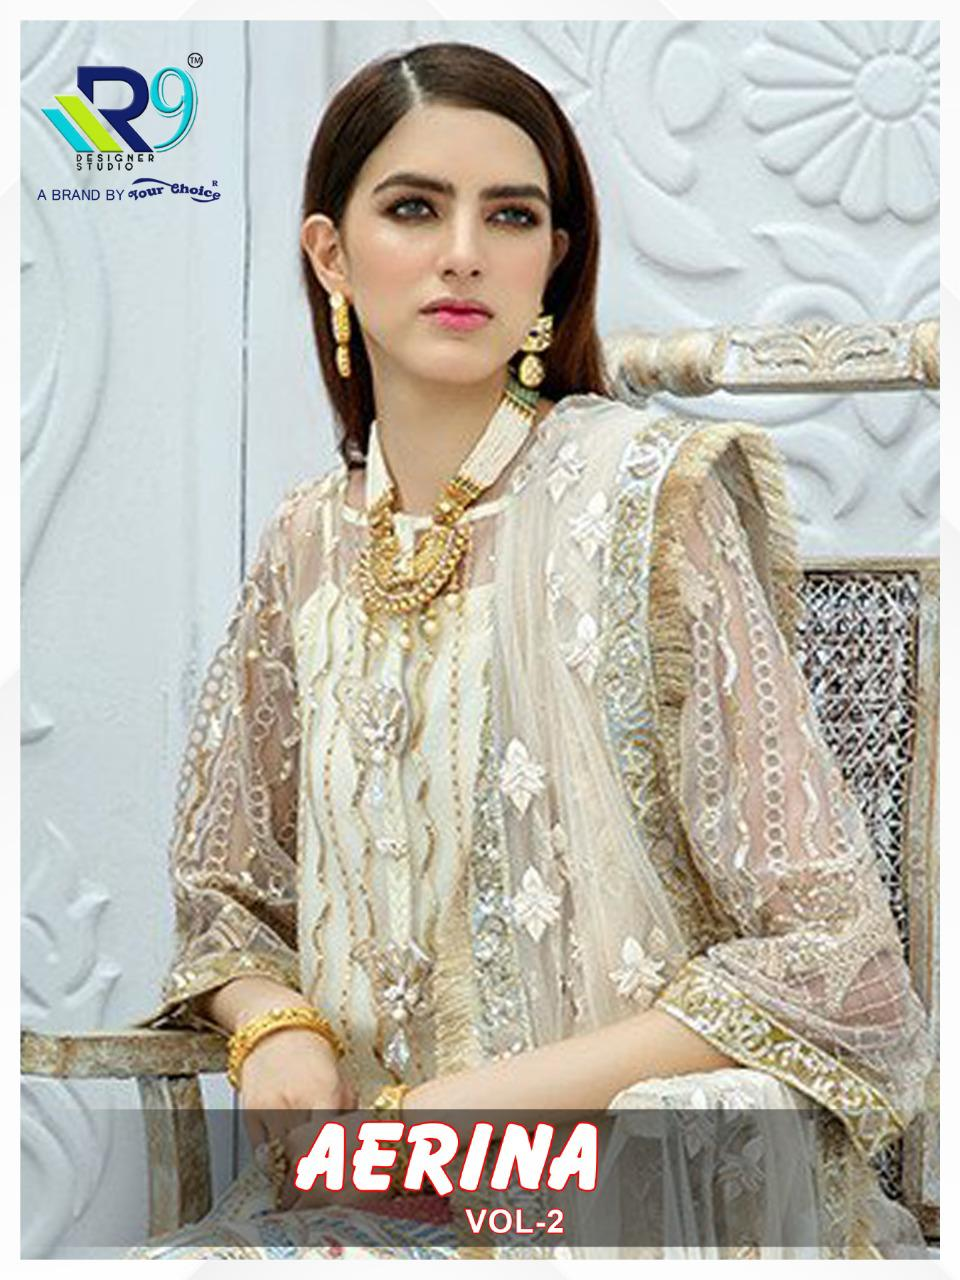 R9 Designer Aerina Vol 2 Organza And Net With Embroidery Work Pakistani Dress Material At Wholesale Rate